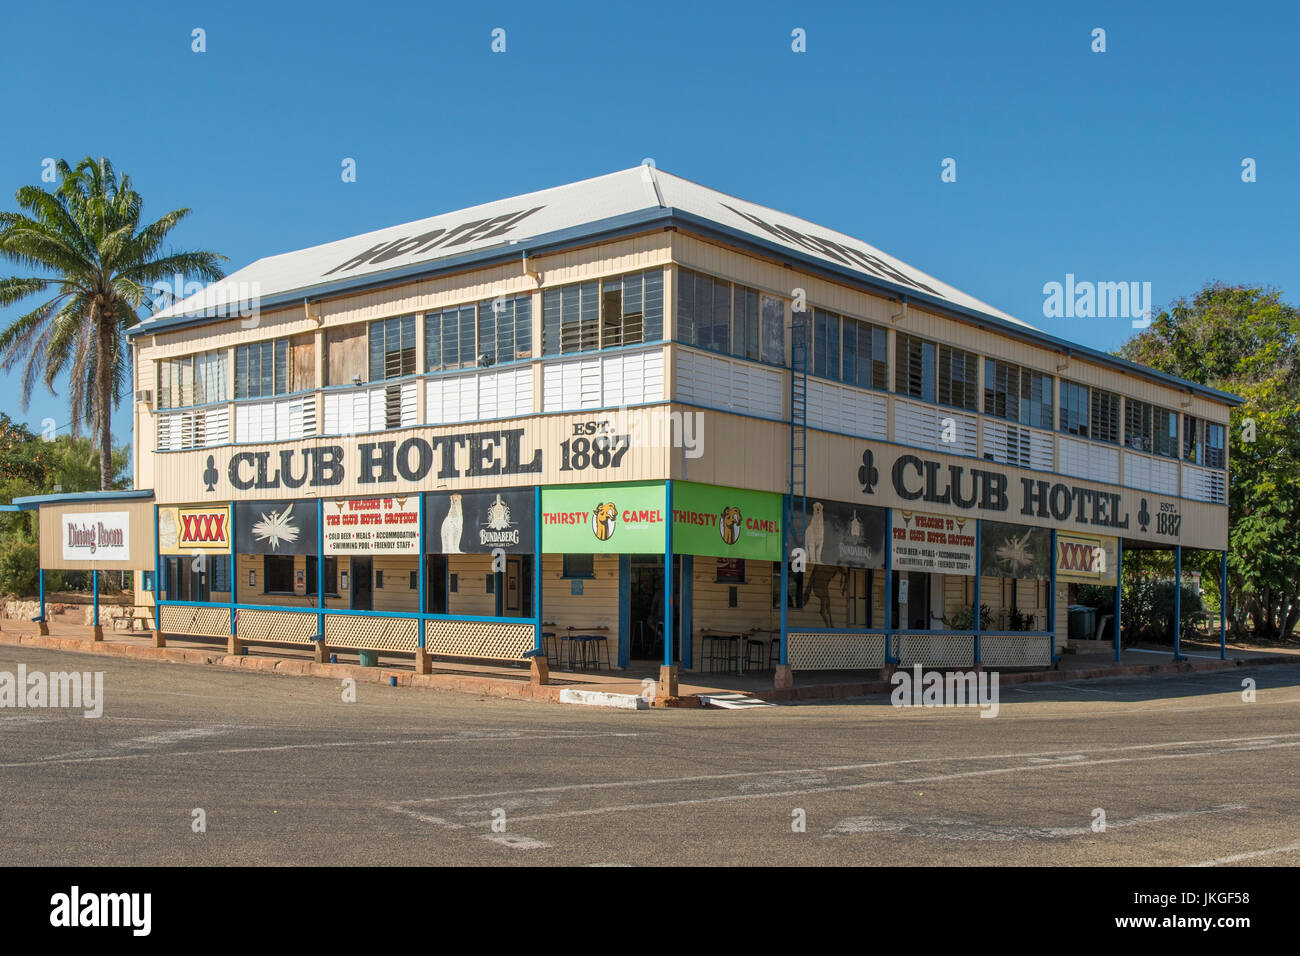 Historic Croydon Club Hotel, Croydon, Queensland, Australia - Stock Image